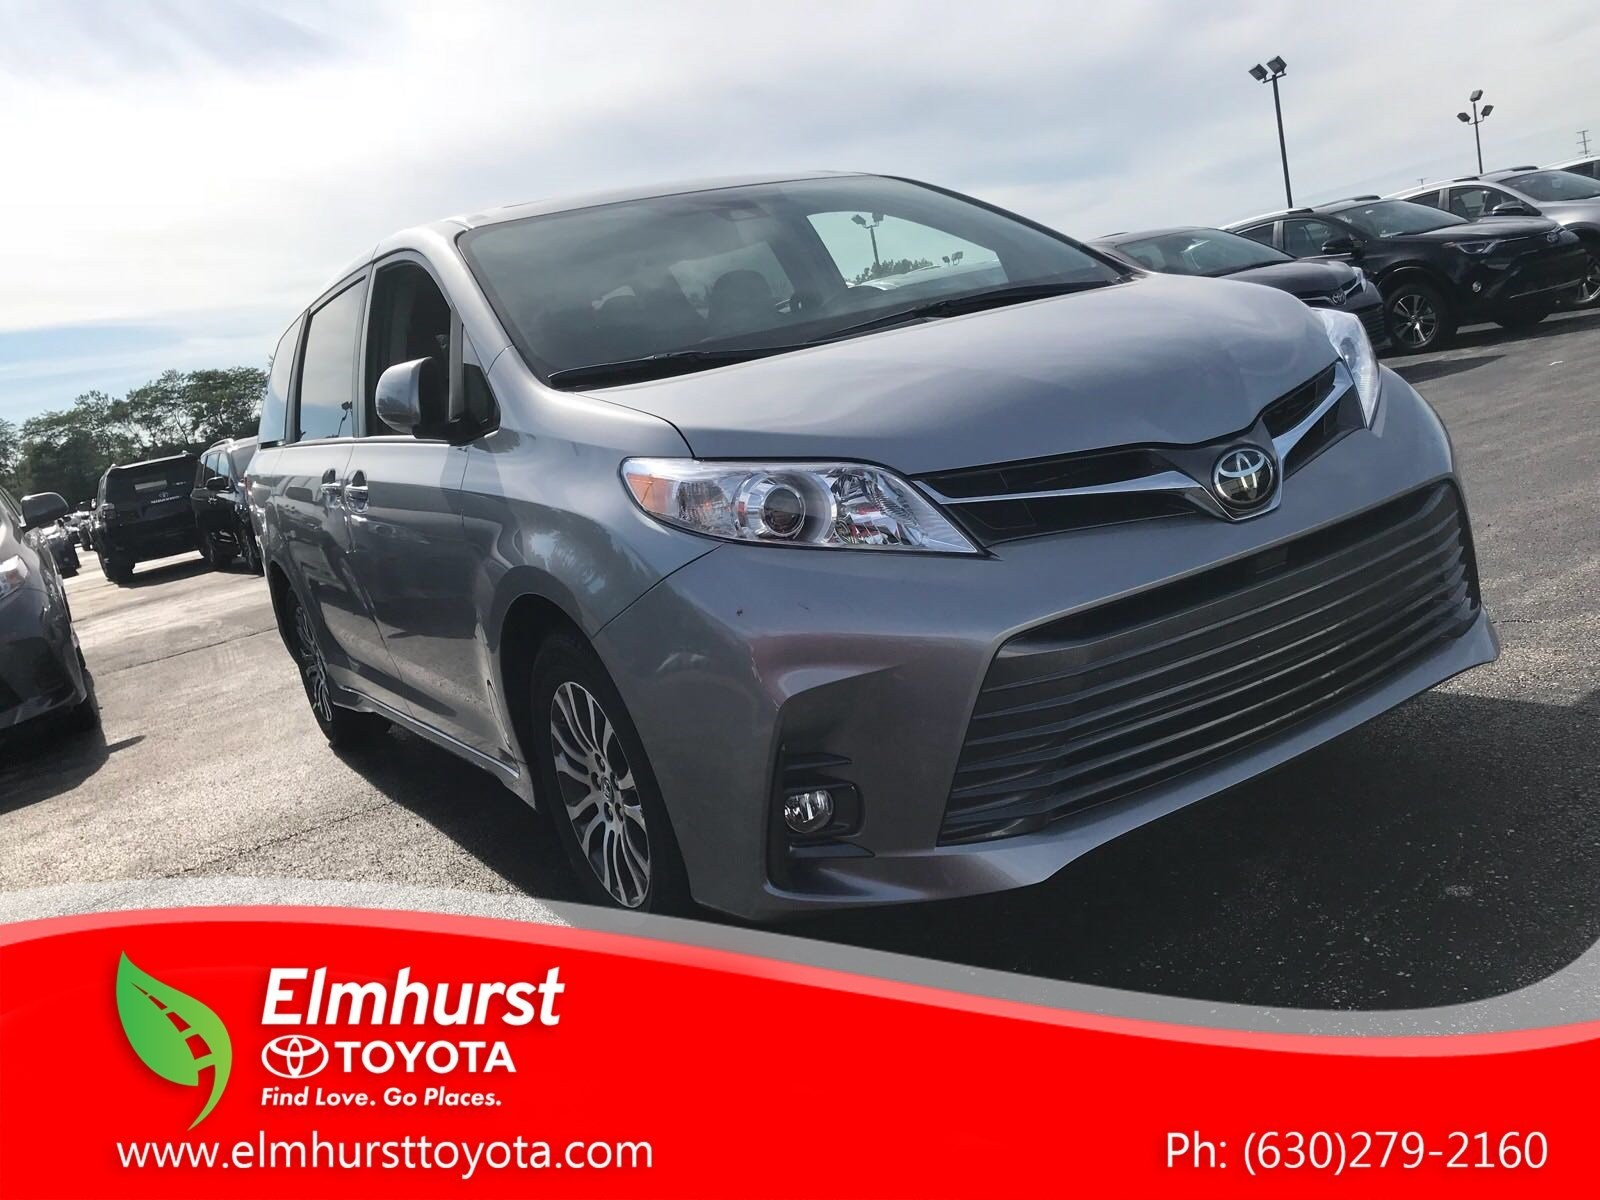 2004 toyota Sienna Parts Diagram New 2018 toyota Sienna Xle Premium Mini Van Passenger In Elmhurst Of 2004 toyota Sienna Parts Diagram New 2018 toyota Sienna Le 4d Passenger Van In Naperville T